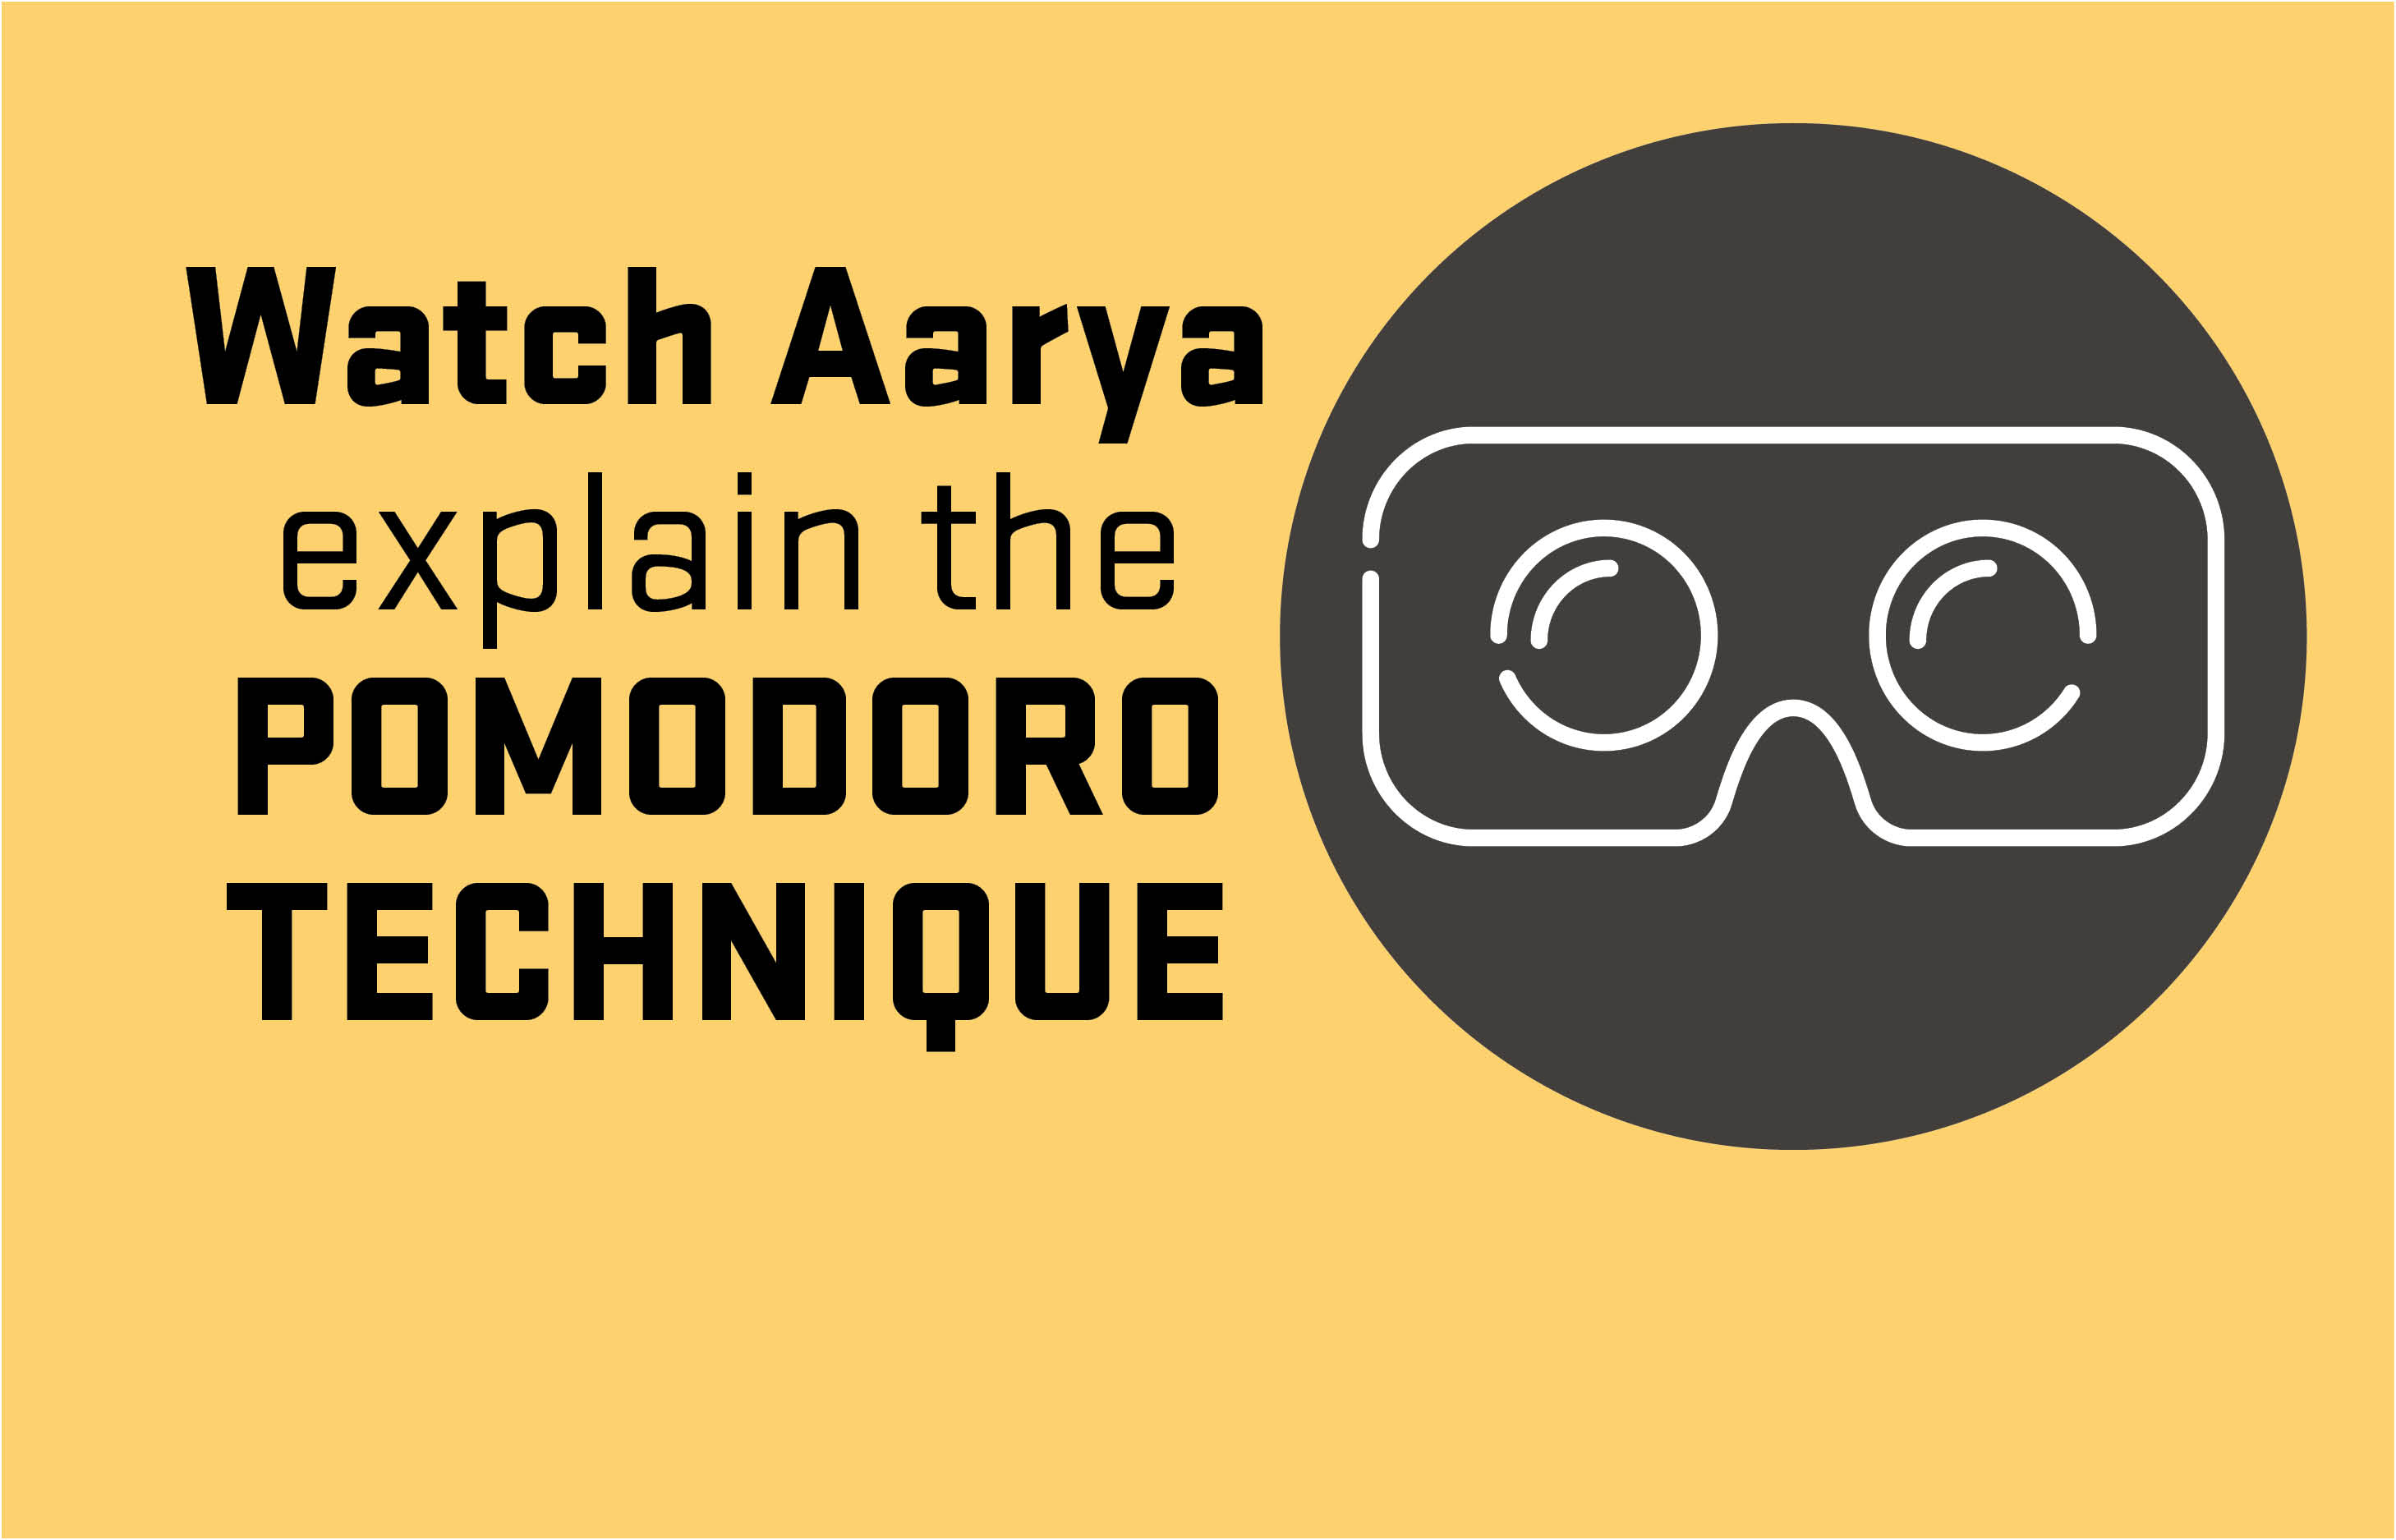 Watch Aarya talk about the Pomodoro Technique